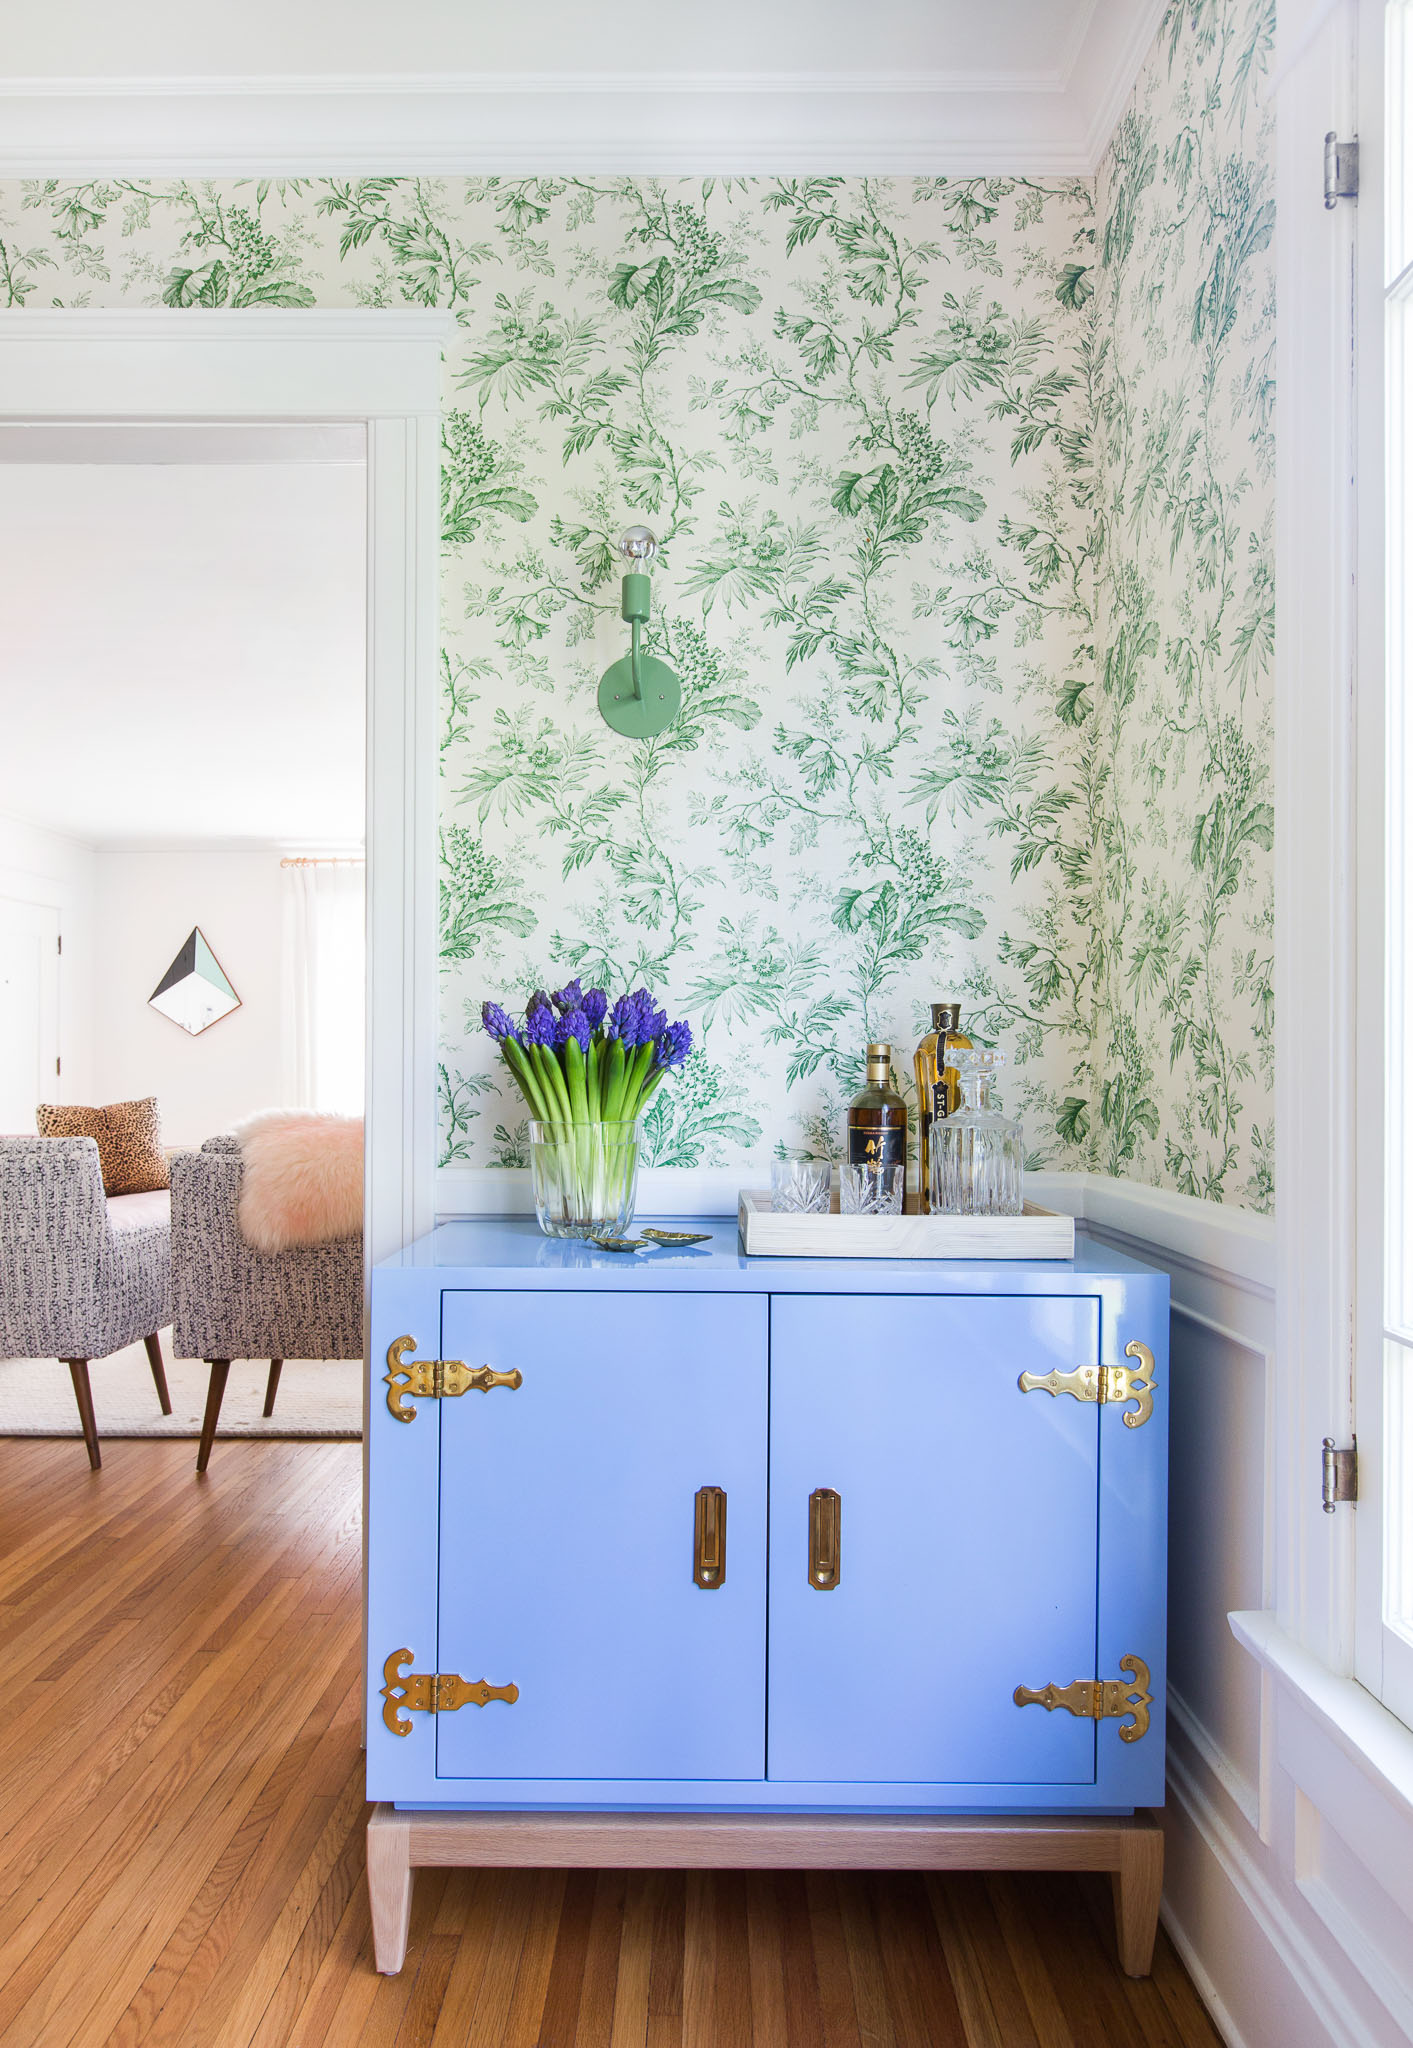 Lacquered Bar Cabinet & Vibrant Green Wallcovering in Colorful California Home by Stefani Stein Inc.